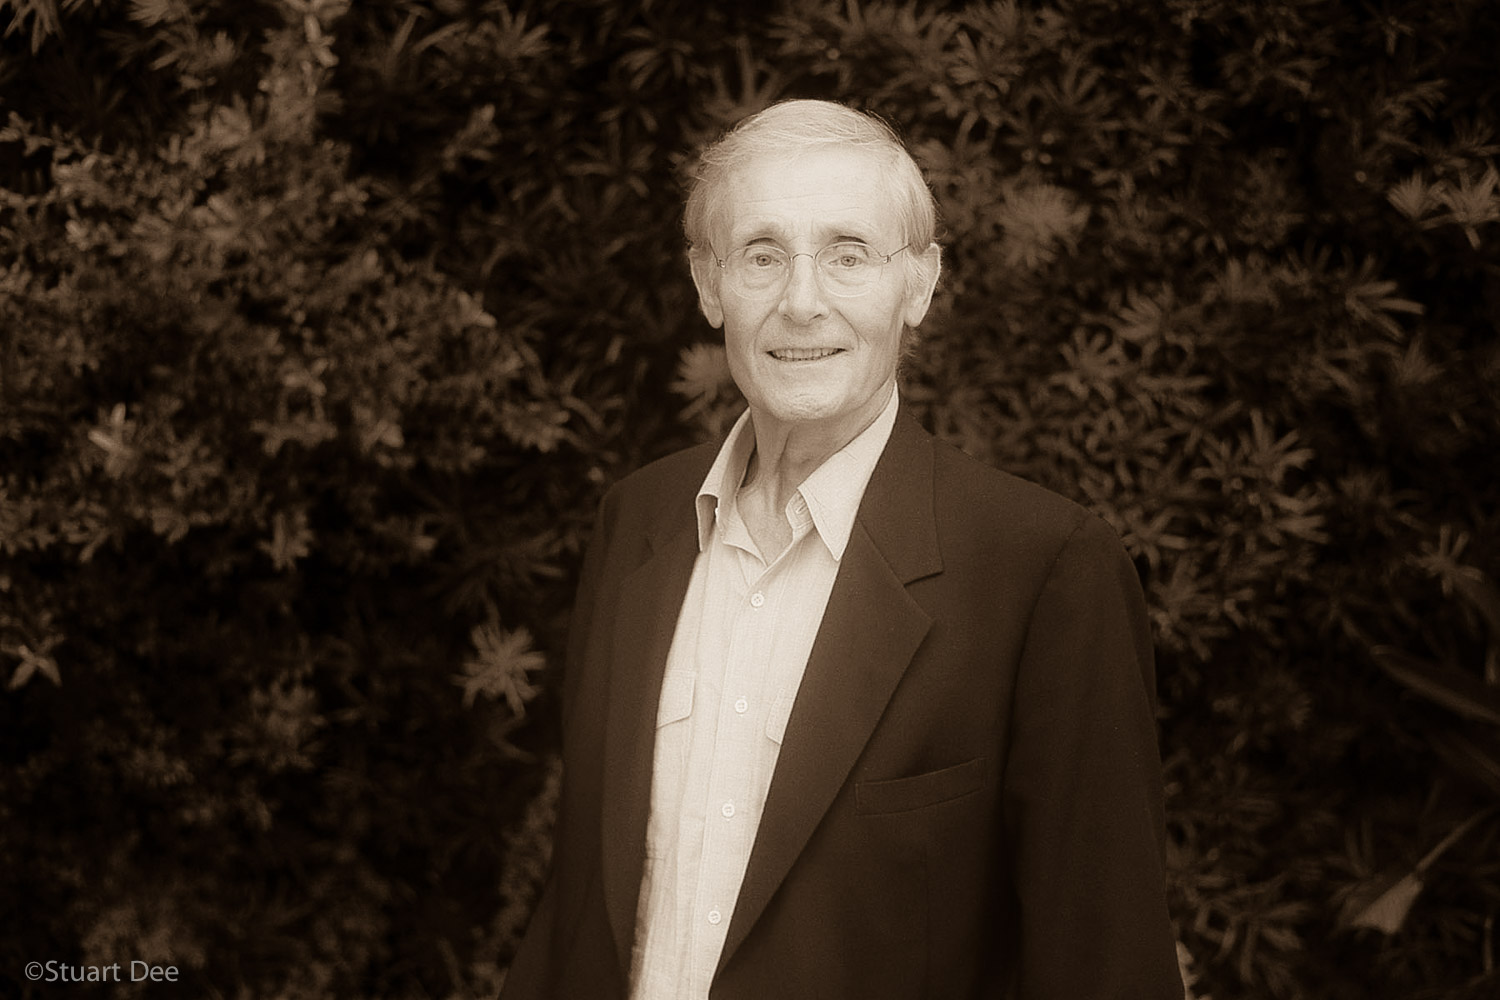 Peter Benchley - Author